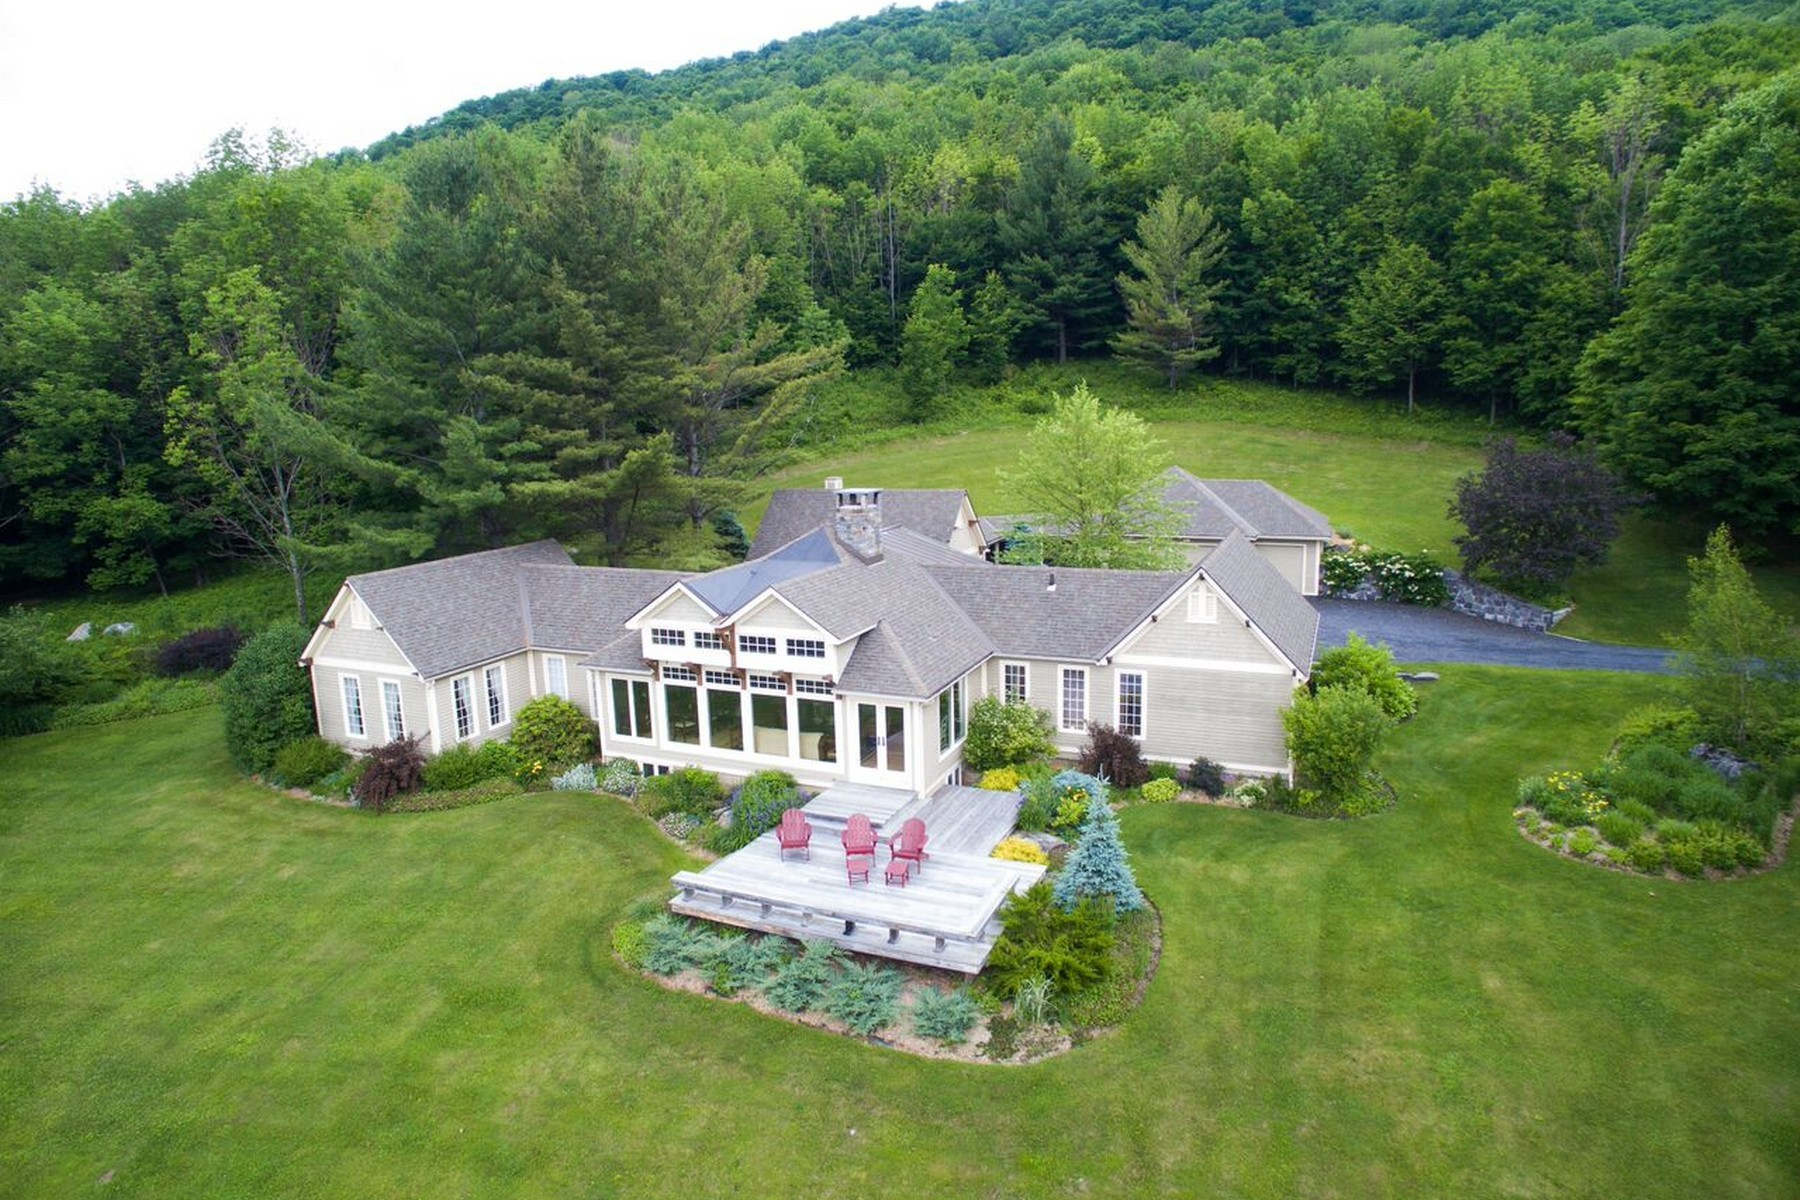 Single Family Home for Sale at Private Estate with Views 395 Red Tail Lane Dorset Hollow Dorset, Vermont, 05251 United States